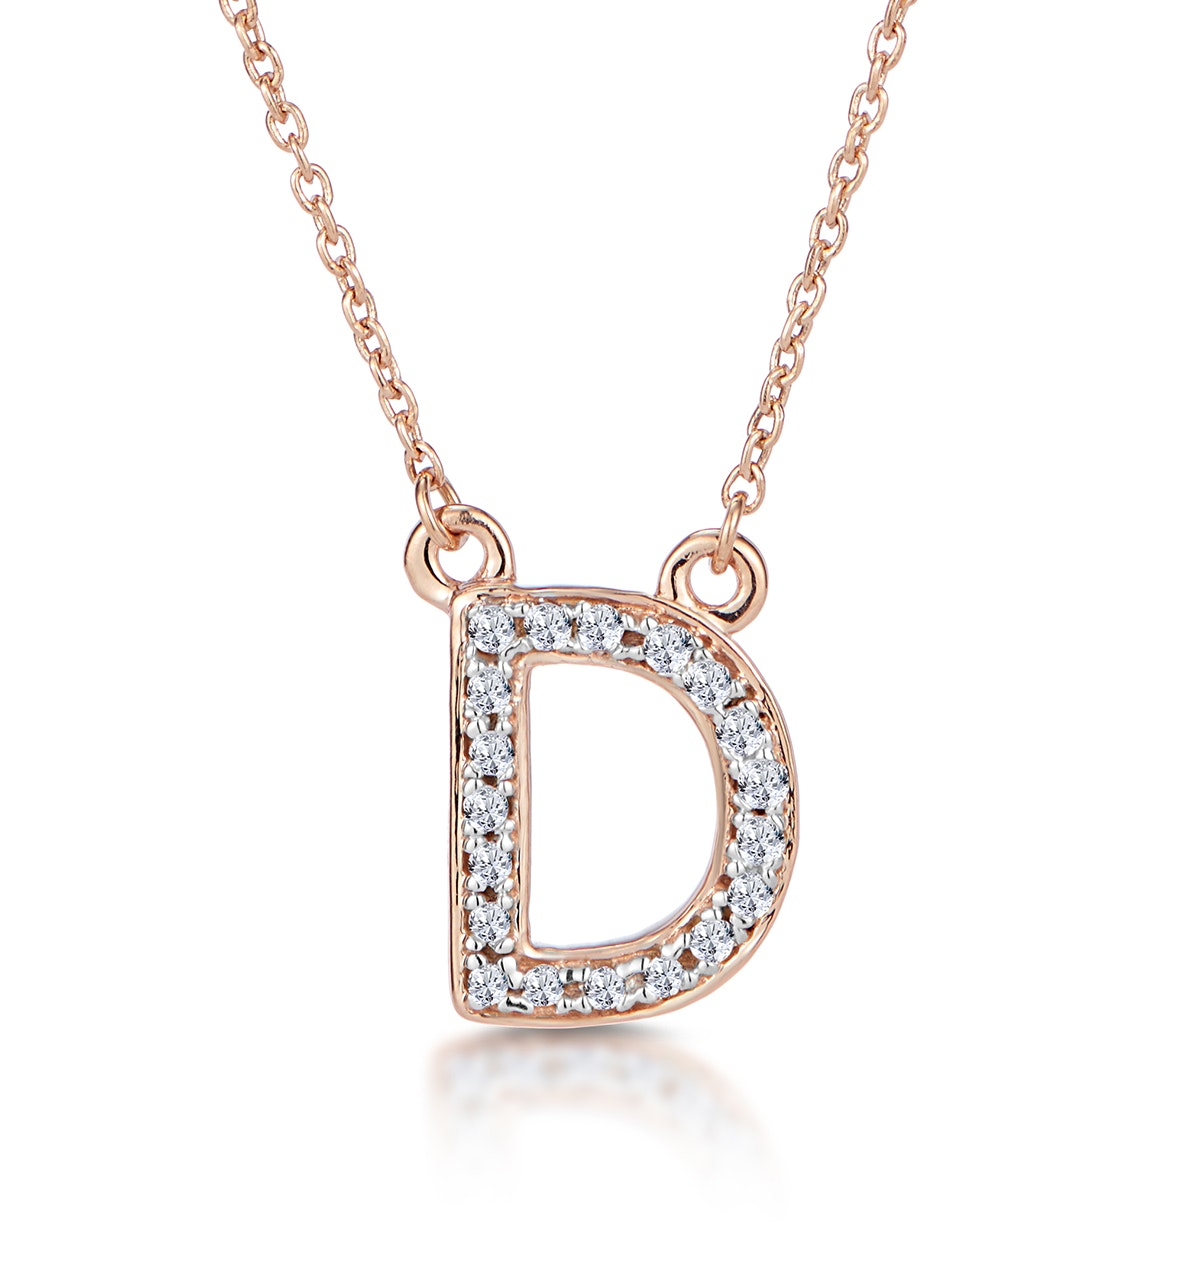 Initial 'D' Necklace Diamond Encrusted Pave Set in 9K Rose Gold